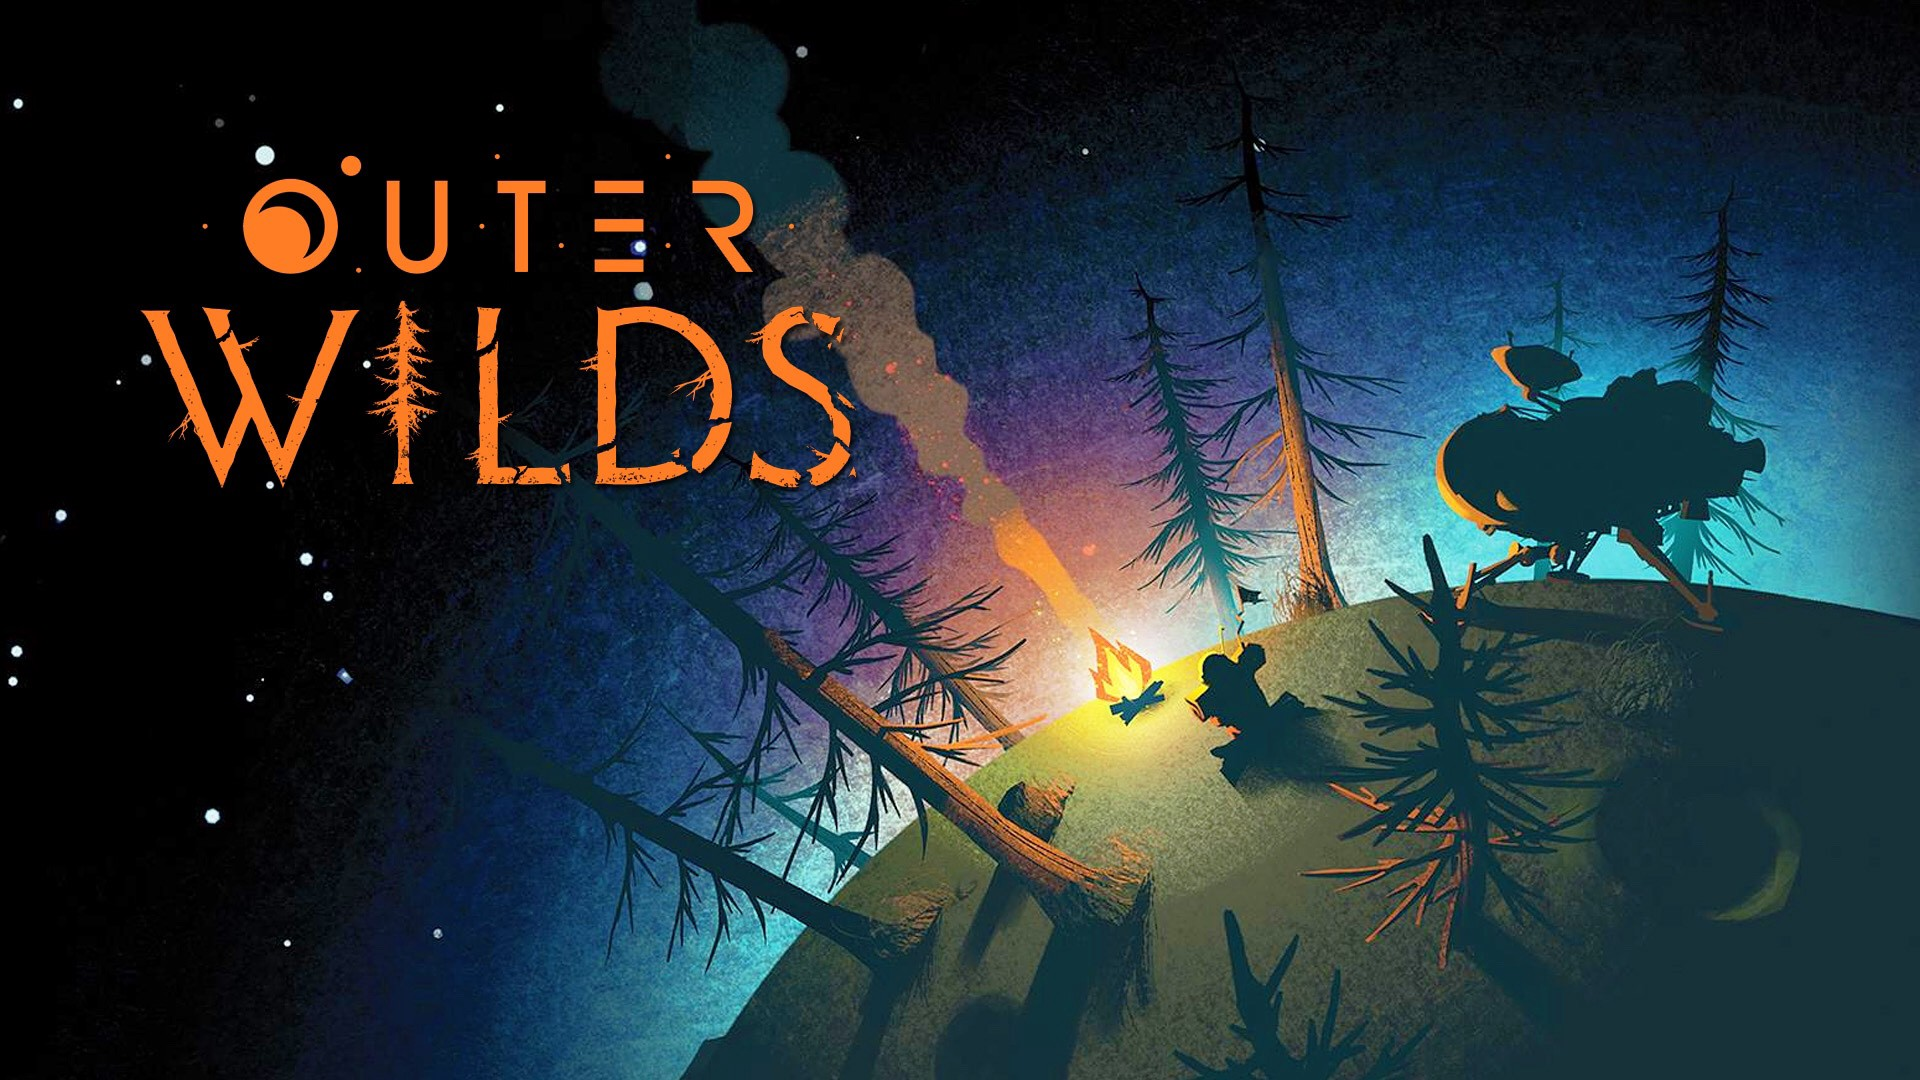 Pour un <b>développeur</b> de Outer Wilds, le Xbox Game Pass transforme l'industrie